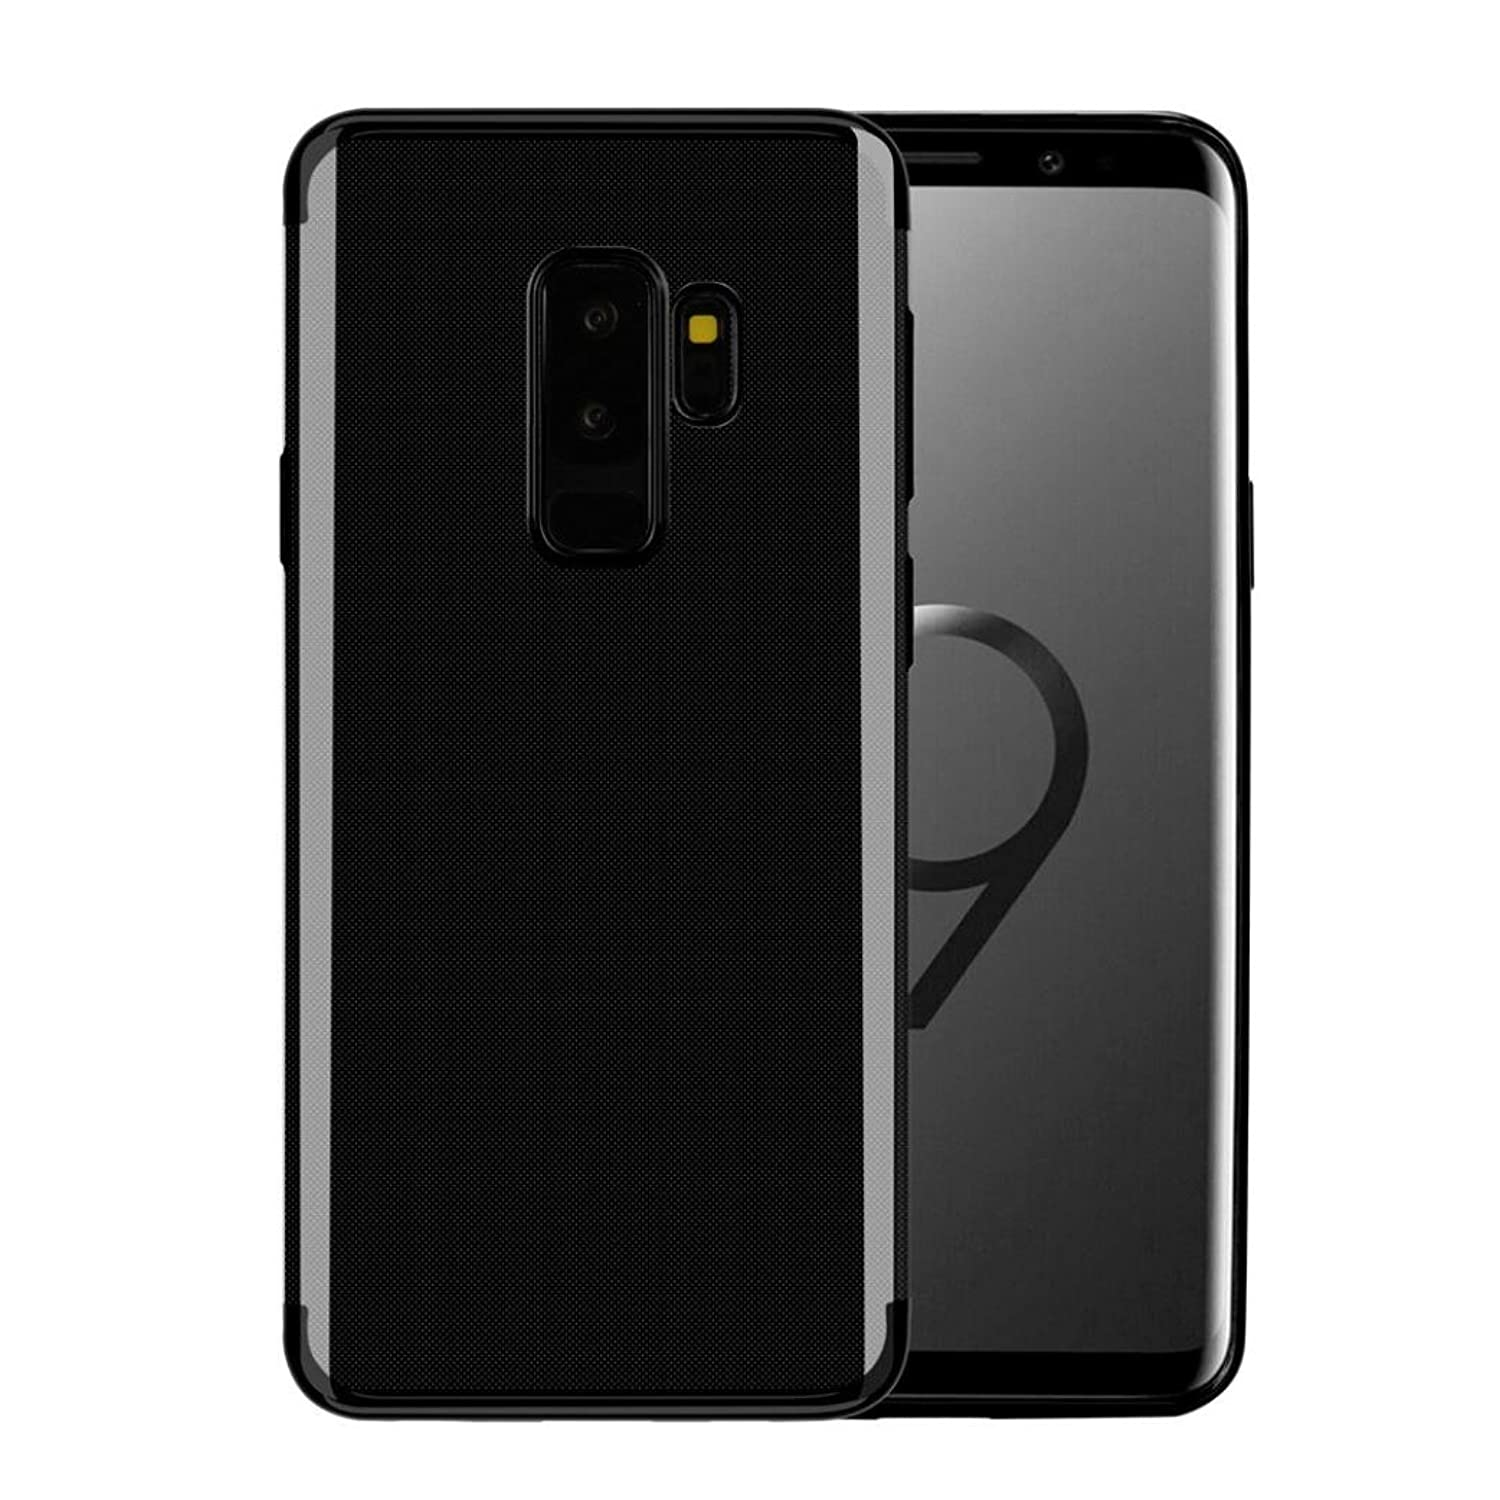 Plating Flexible Silicone Back CaseLuxury Ultra-Thin Smoothly Touch Soft Case Cover For Samsung Galaxy S9/S9 Plus